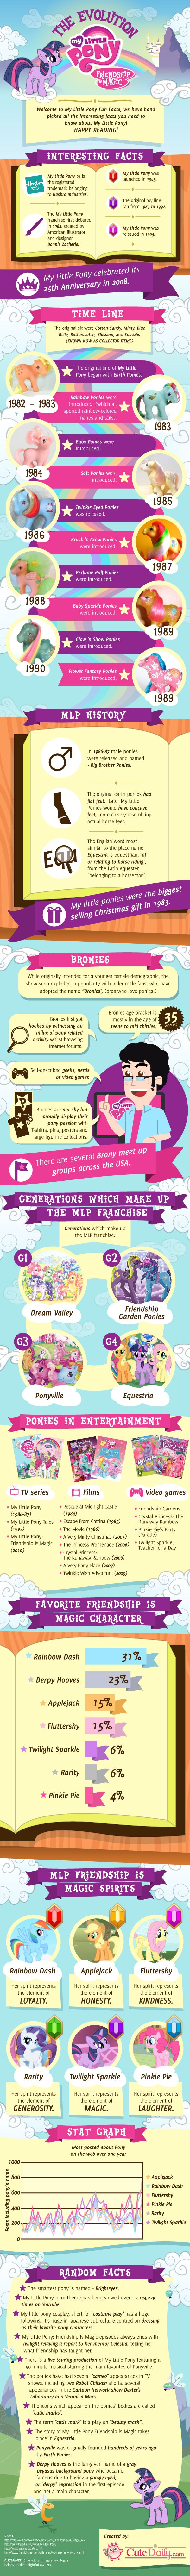 My Little Pony: The Evolution. Facts about ponies, unicorns, and pegasus Go pints go and keep going for as long as possible